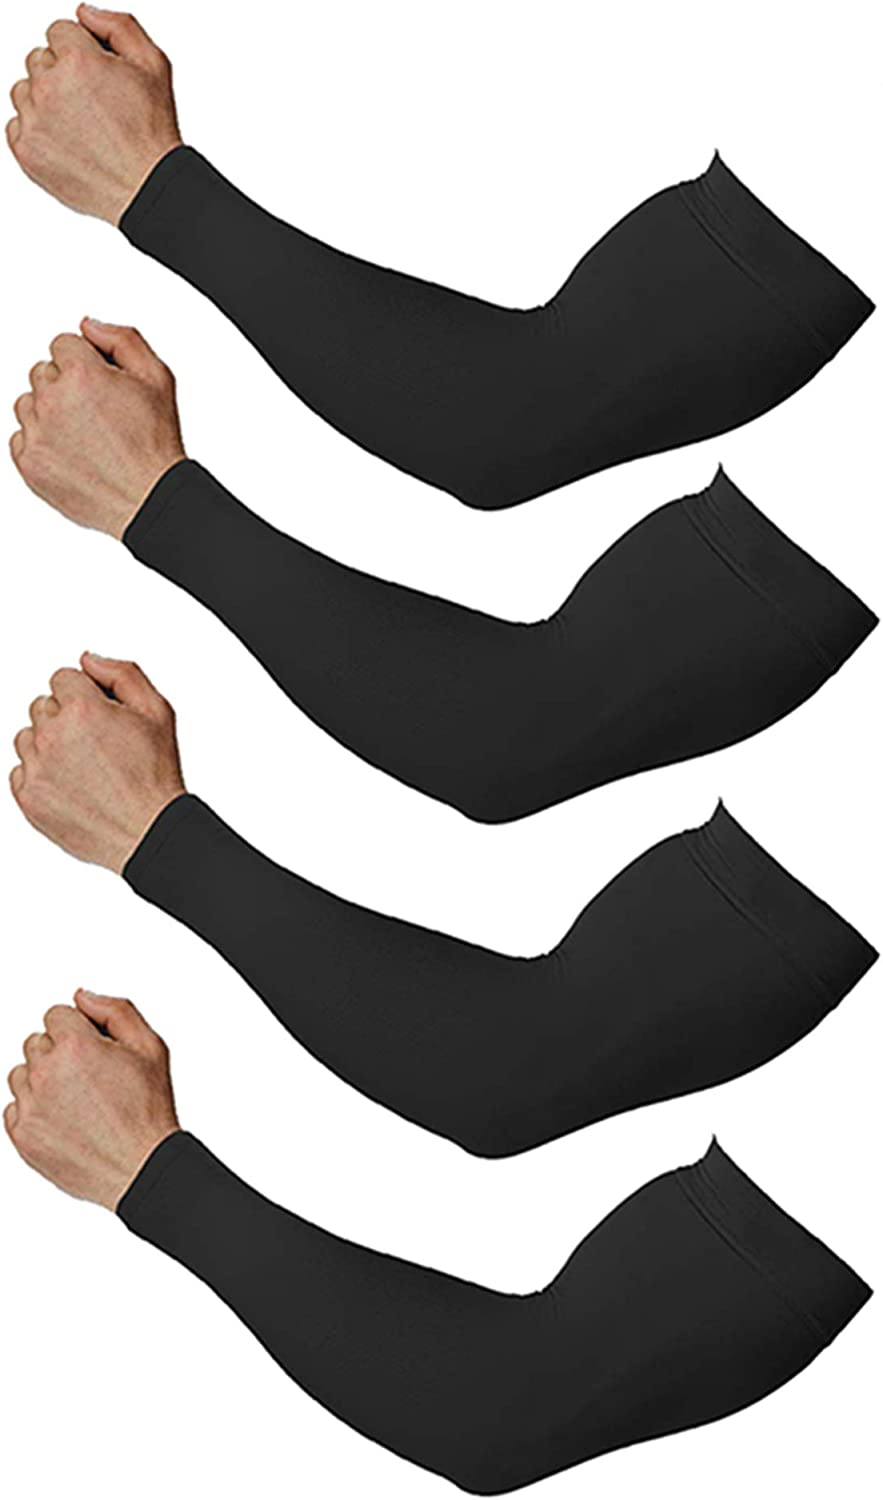 Arm Sleeves for Men and Women, Sleeves to Cover Arms for Men and Women, Gaming Sleeve, UV Protection Cooling Arm Sleeves, 4-Pairs Anti-Slip Compression Sun Sleeves for Cycling Running Outdoor Sports: Clothing